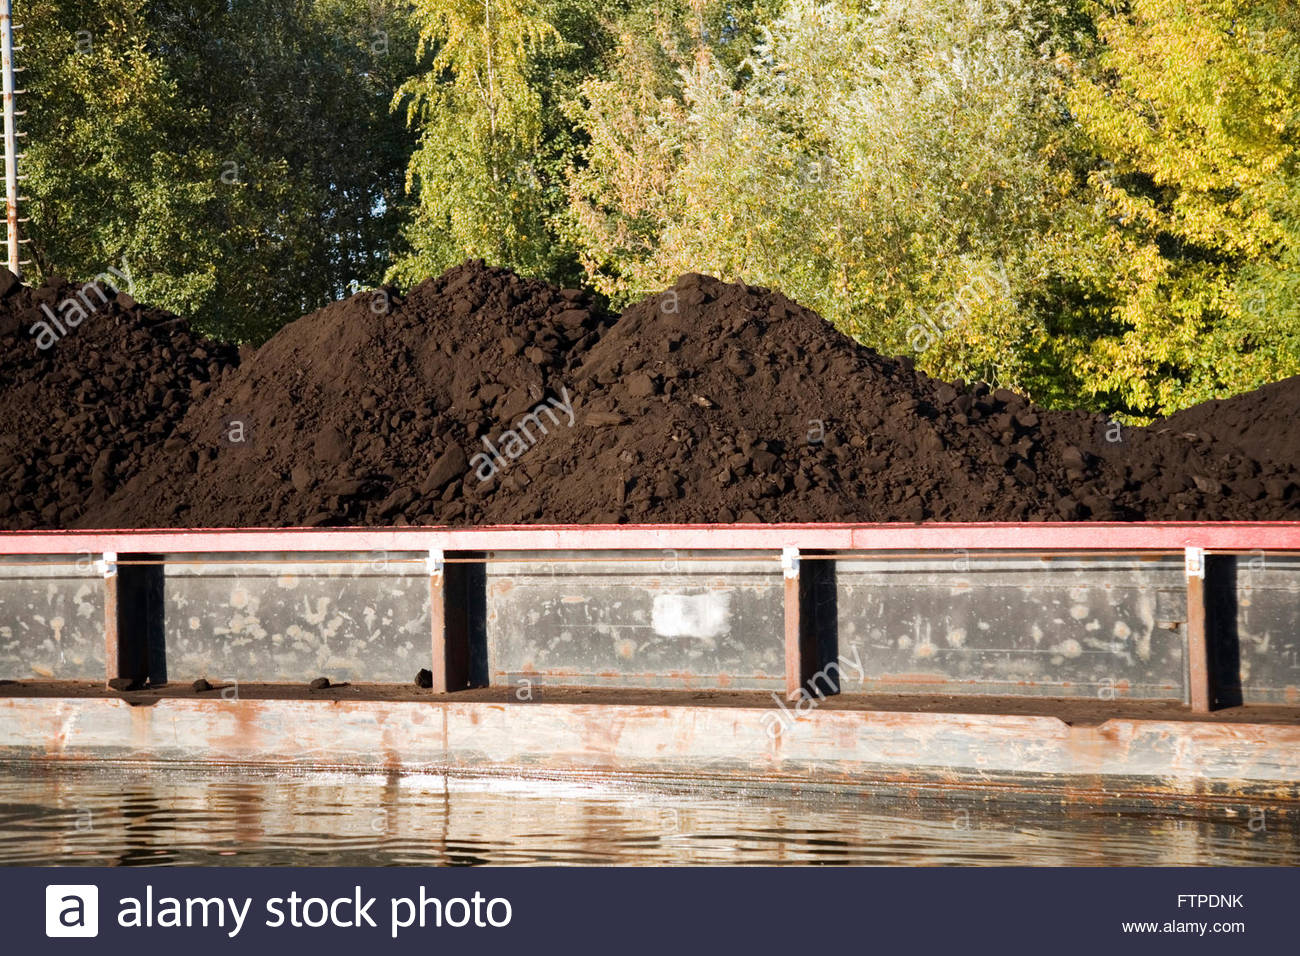 Brown coal loaded on a barge in Germany Stock Photo